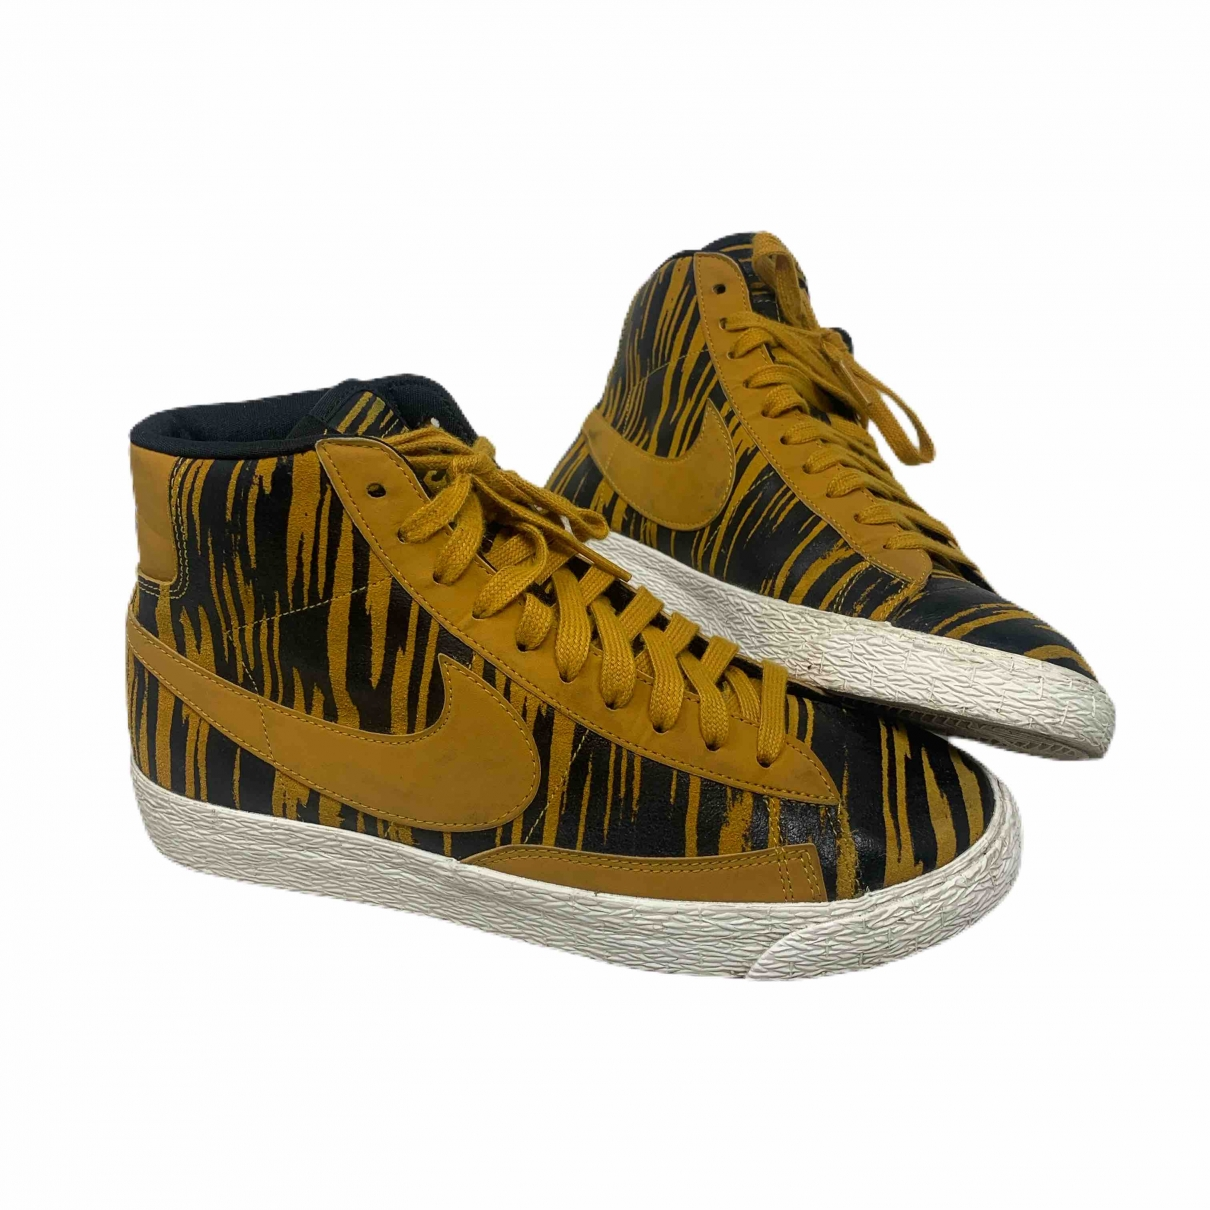 Nike Blazer Cloth Trainers for Women 38.5 EU